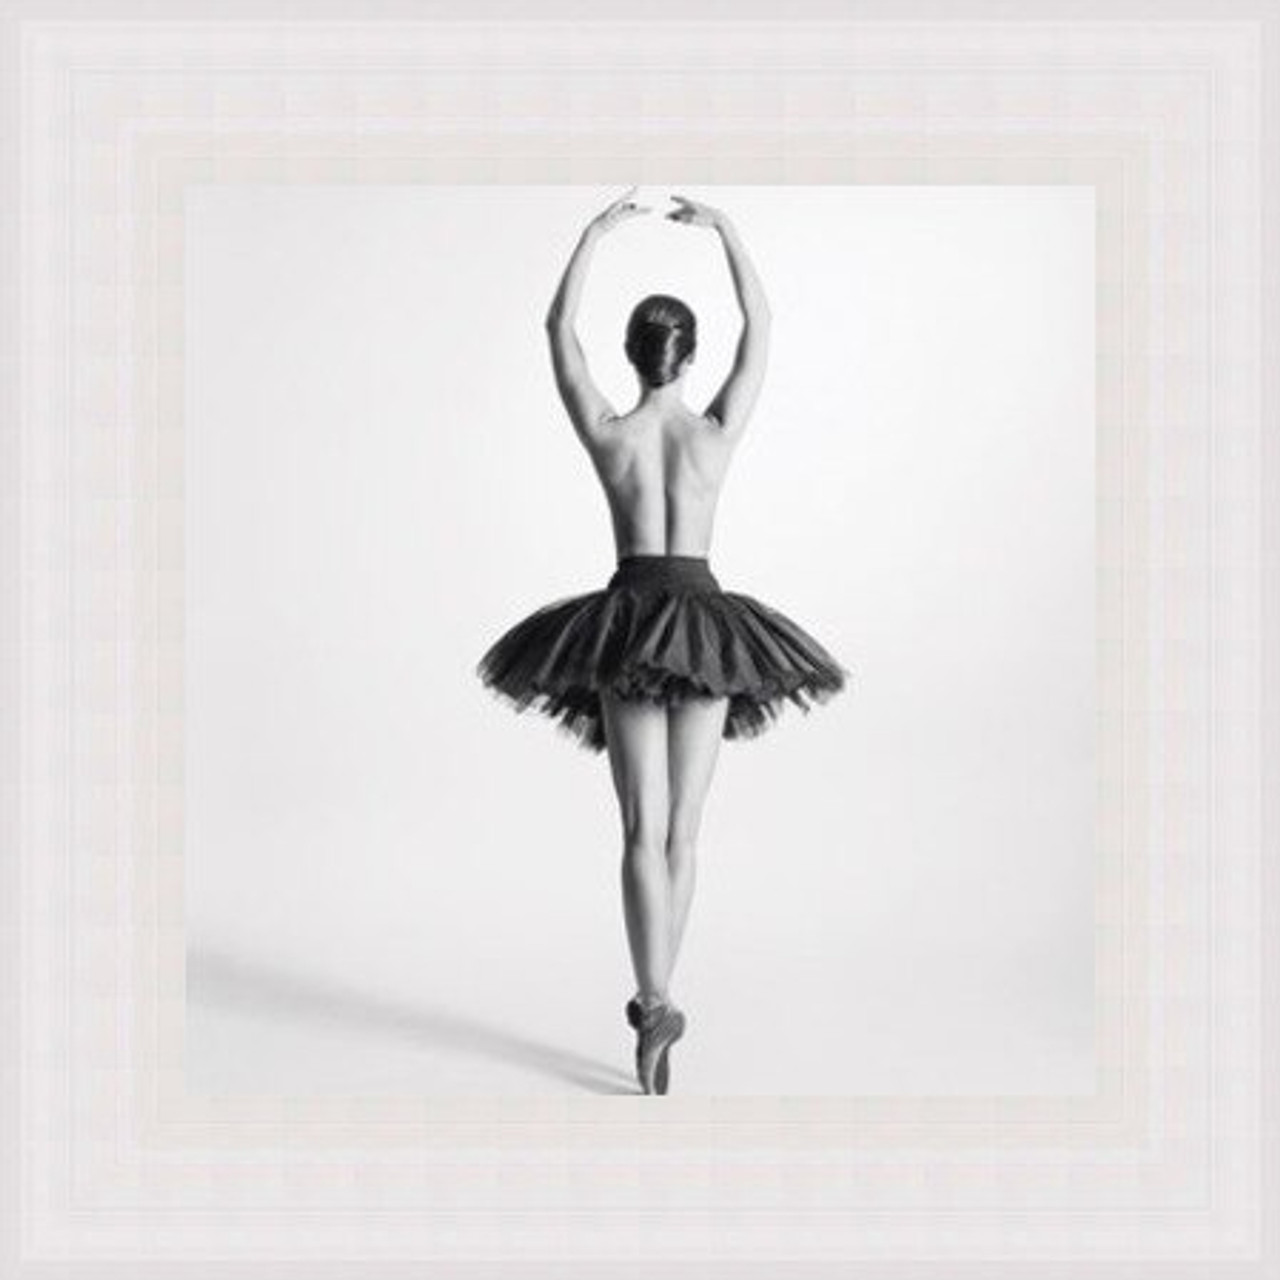 Ballerina Pirouette Black And White